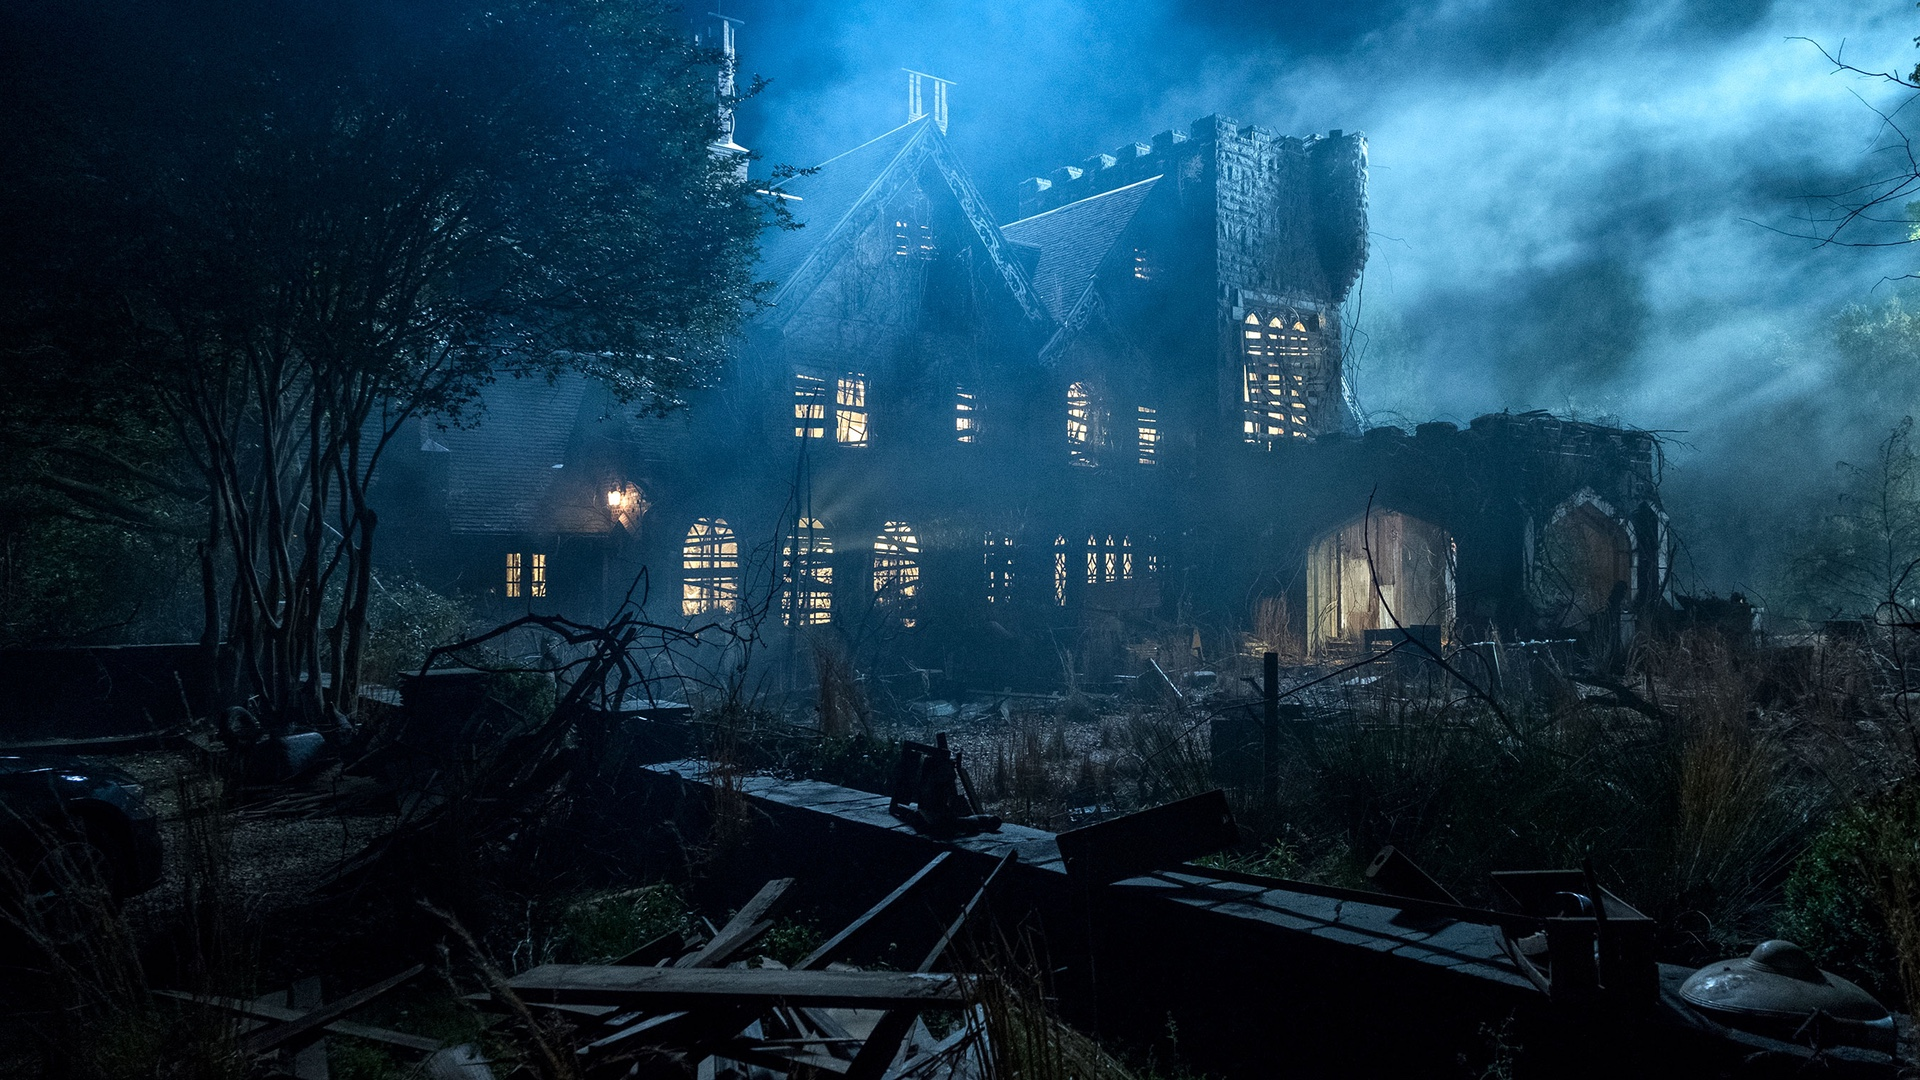 teaser-trailer-and-photos-from-netflixs-the-haunting-of-hill-house1.jpg